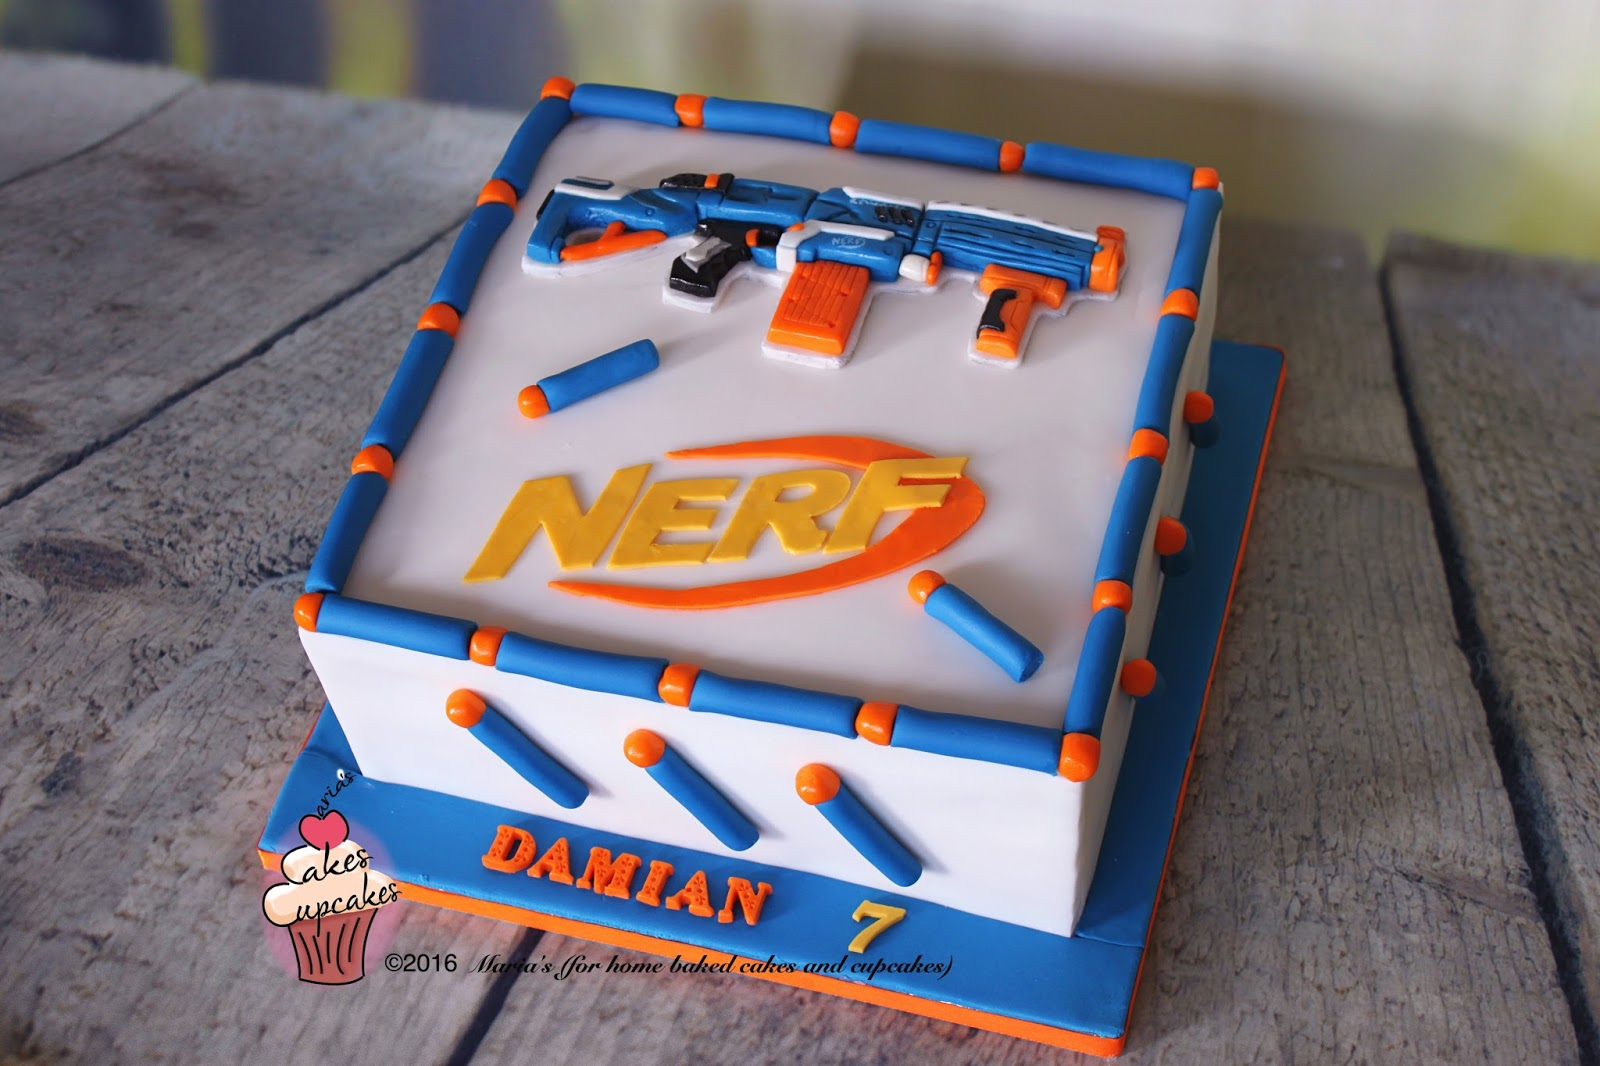 Nerf Birthday Cake Decorations Image Inspiration of Cake and